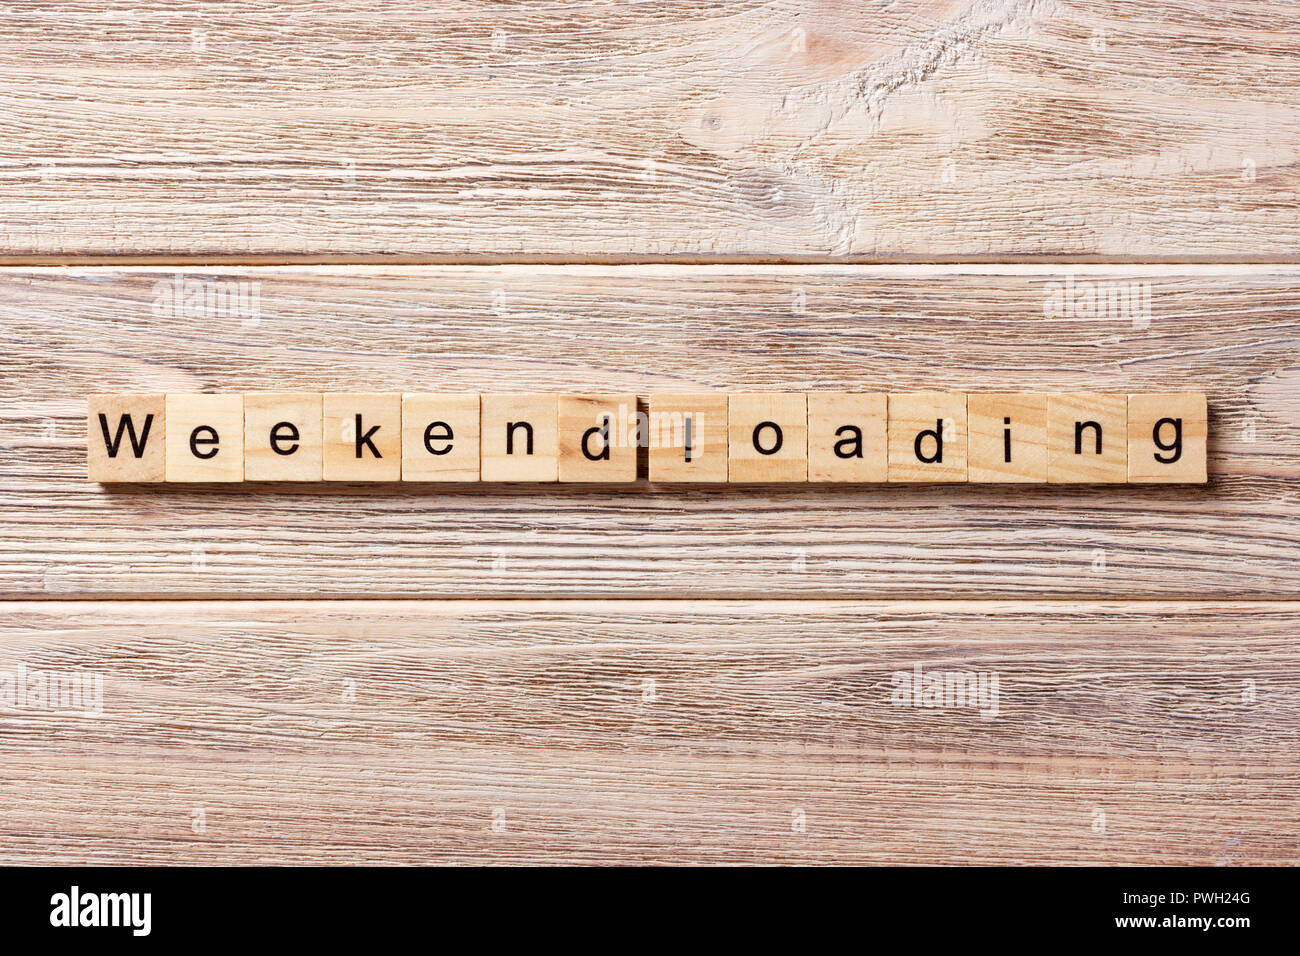 Weekend Loading word written on wood block. Weekend Loading text on table, concept. - Stock Image